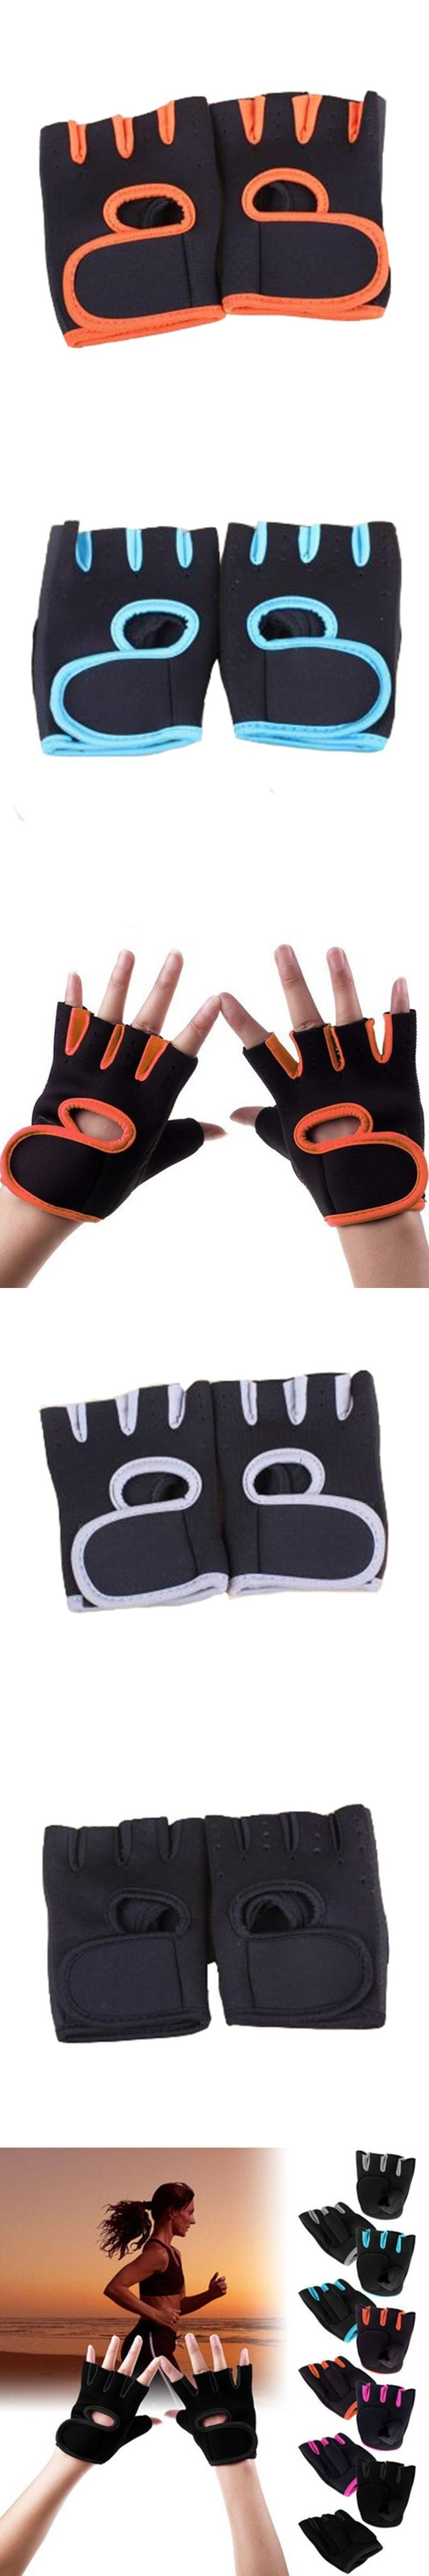 Fitness Gym Gloves Men Training Exercise Weight Lifting Gloves Half Finger Body Workout Women Glove Gym Guantes